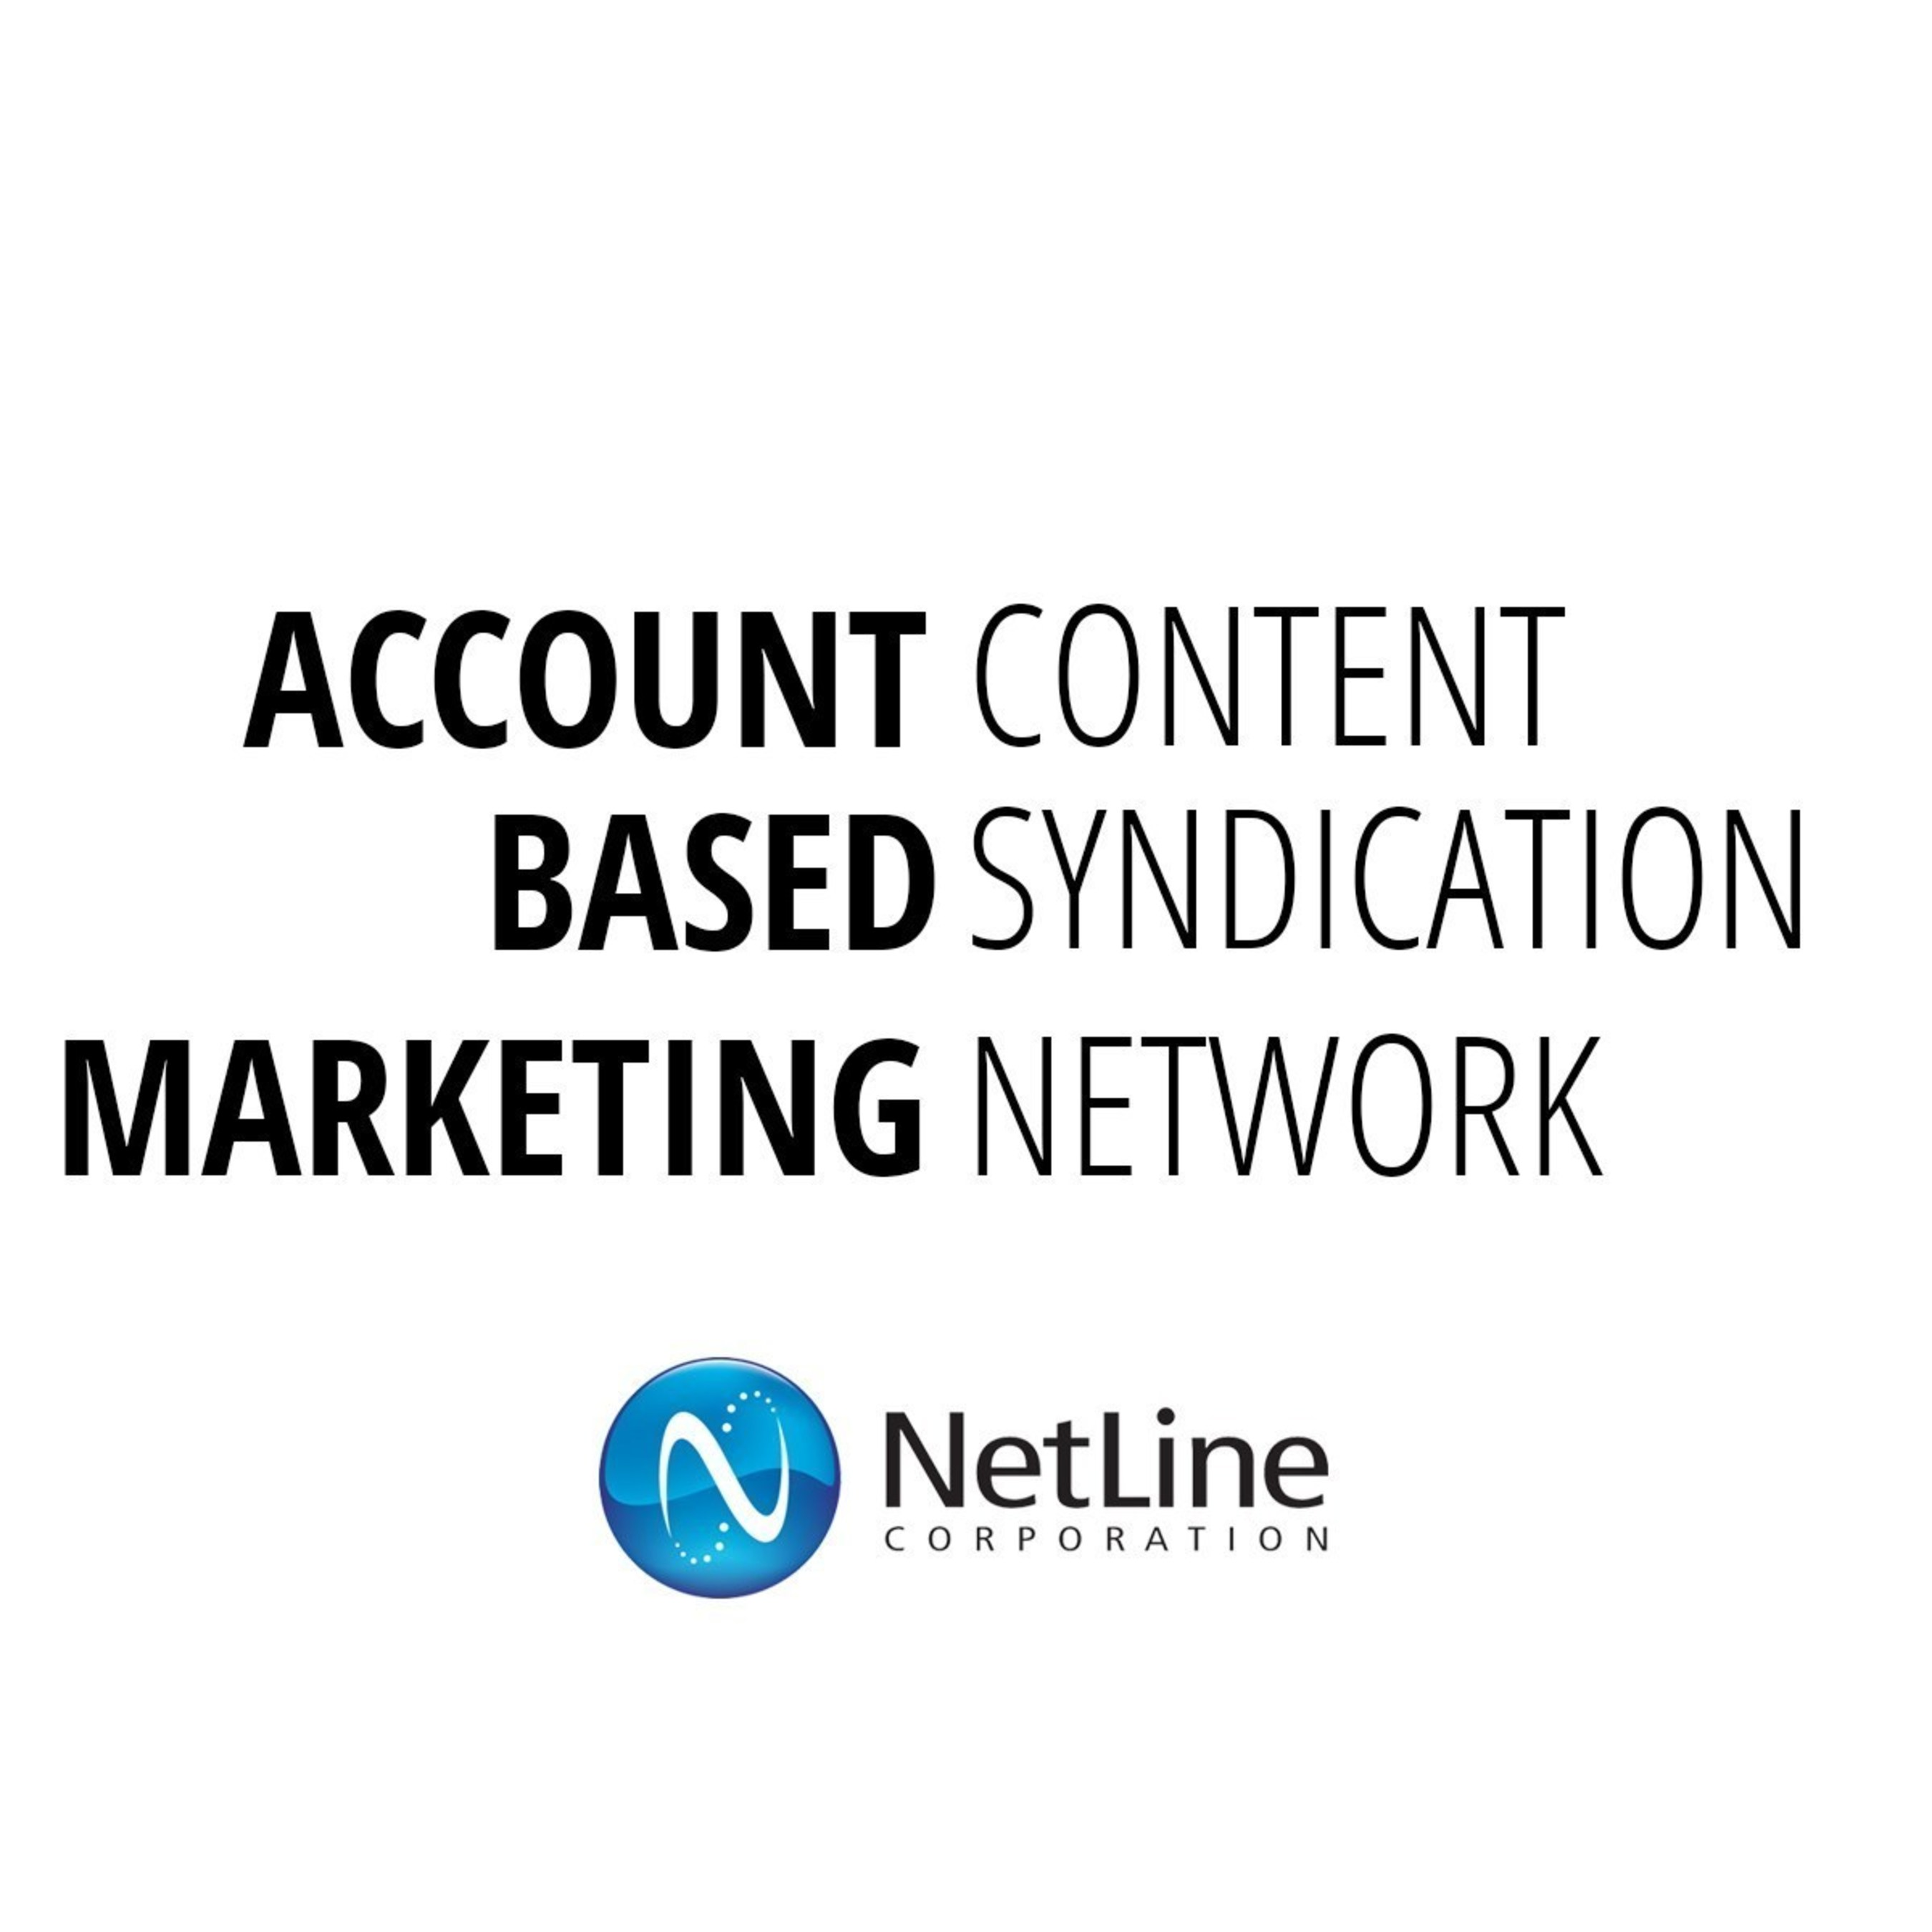 NetLine Corporation's all-encompassing ABM solution enables Marketers to build supremely optimized account lists, run dynamic lead generation campaigns by account, and scale to the largest intent-based professional audience network.